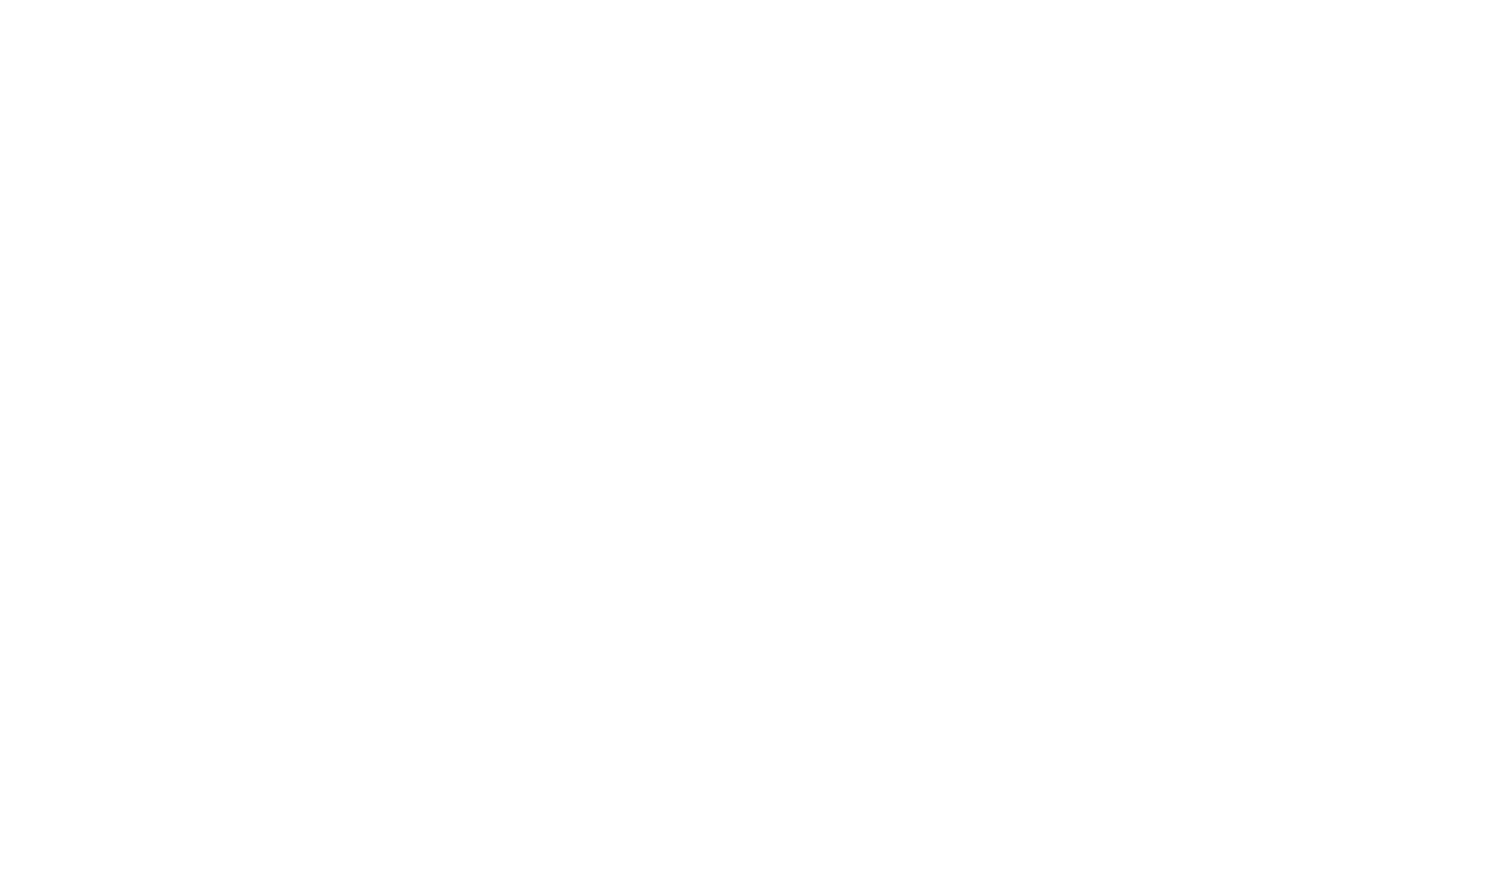 Zed Music Distribution